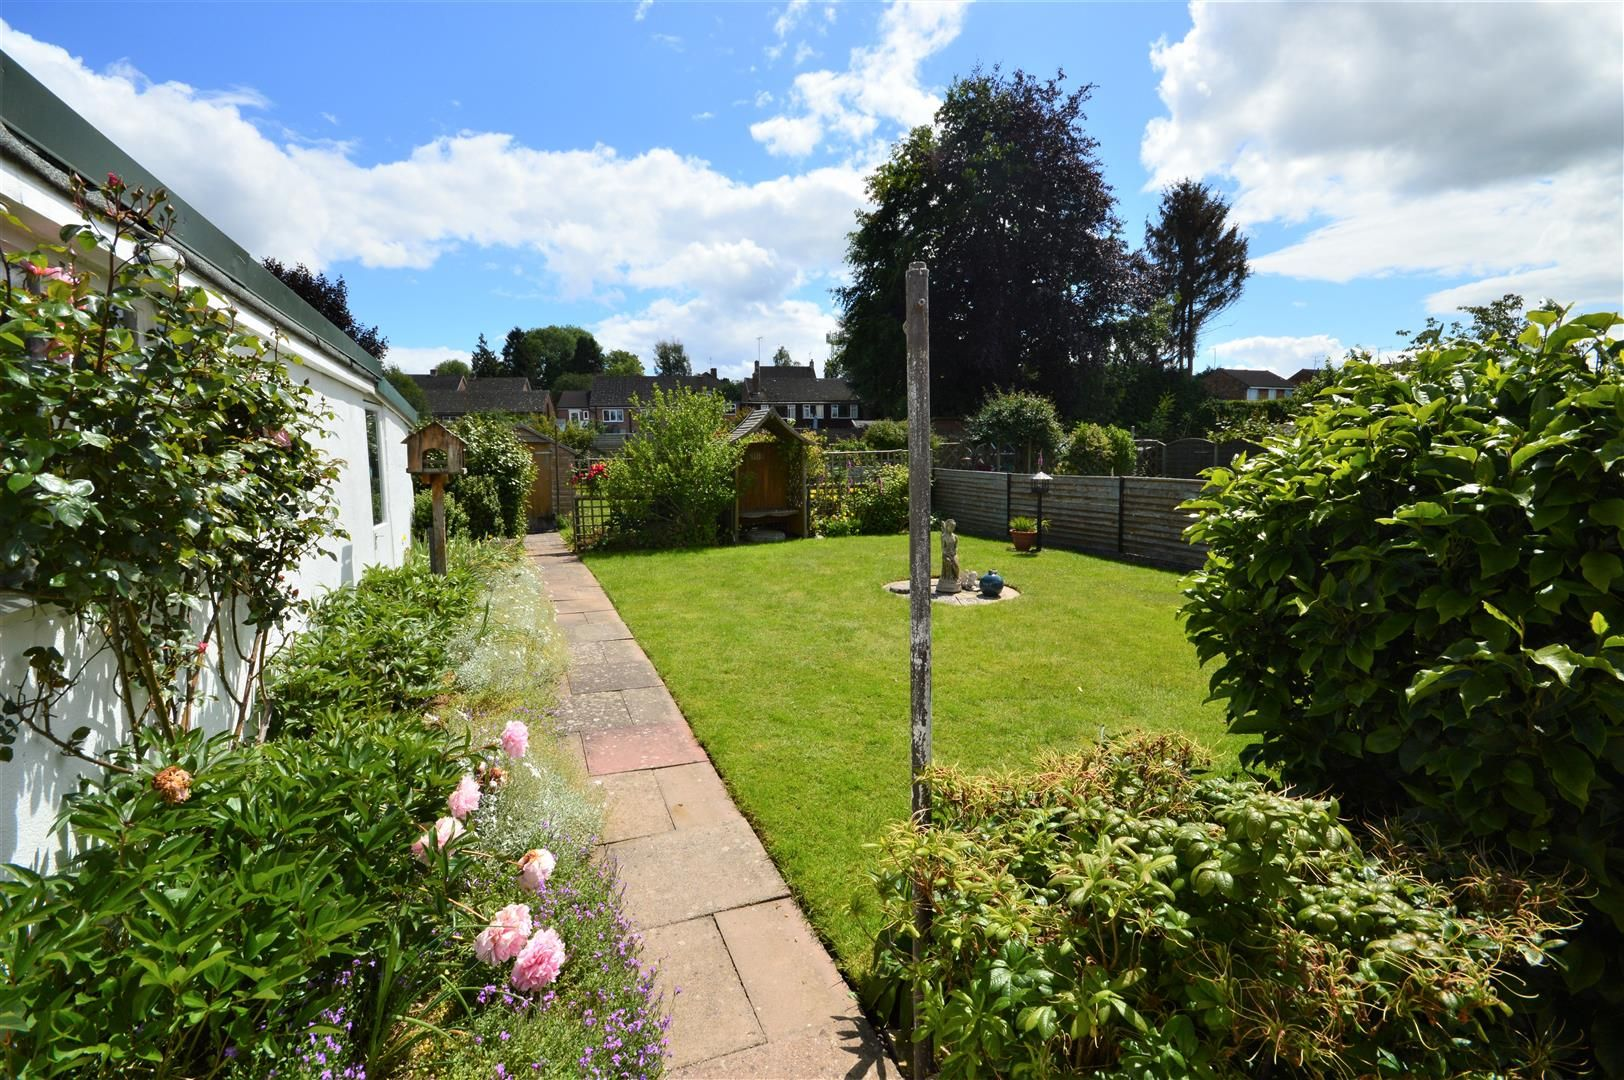 2 bed semi-detached-bungalow for sale in Leominster 9